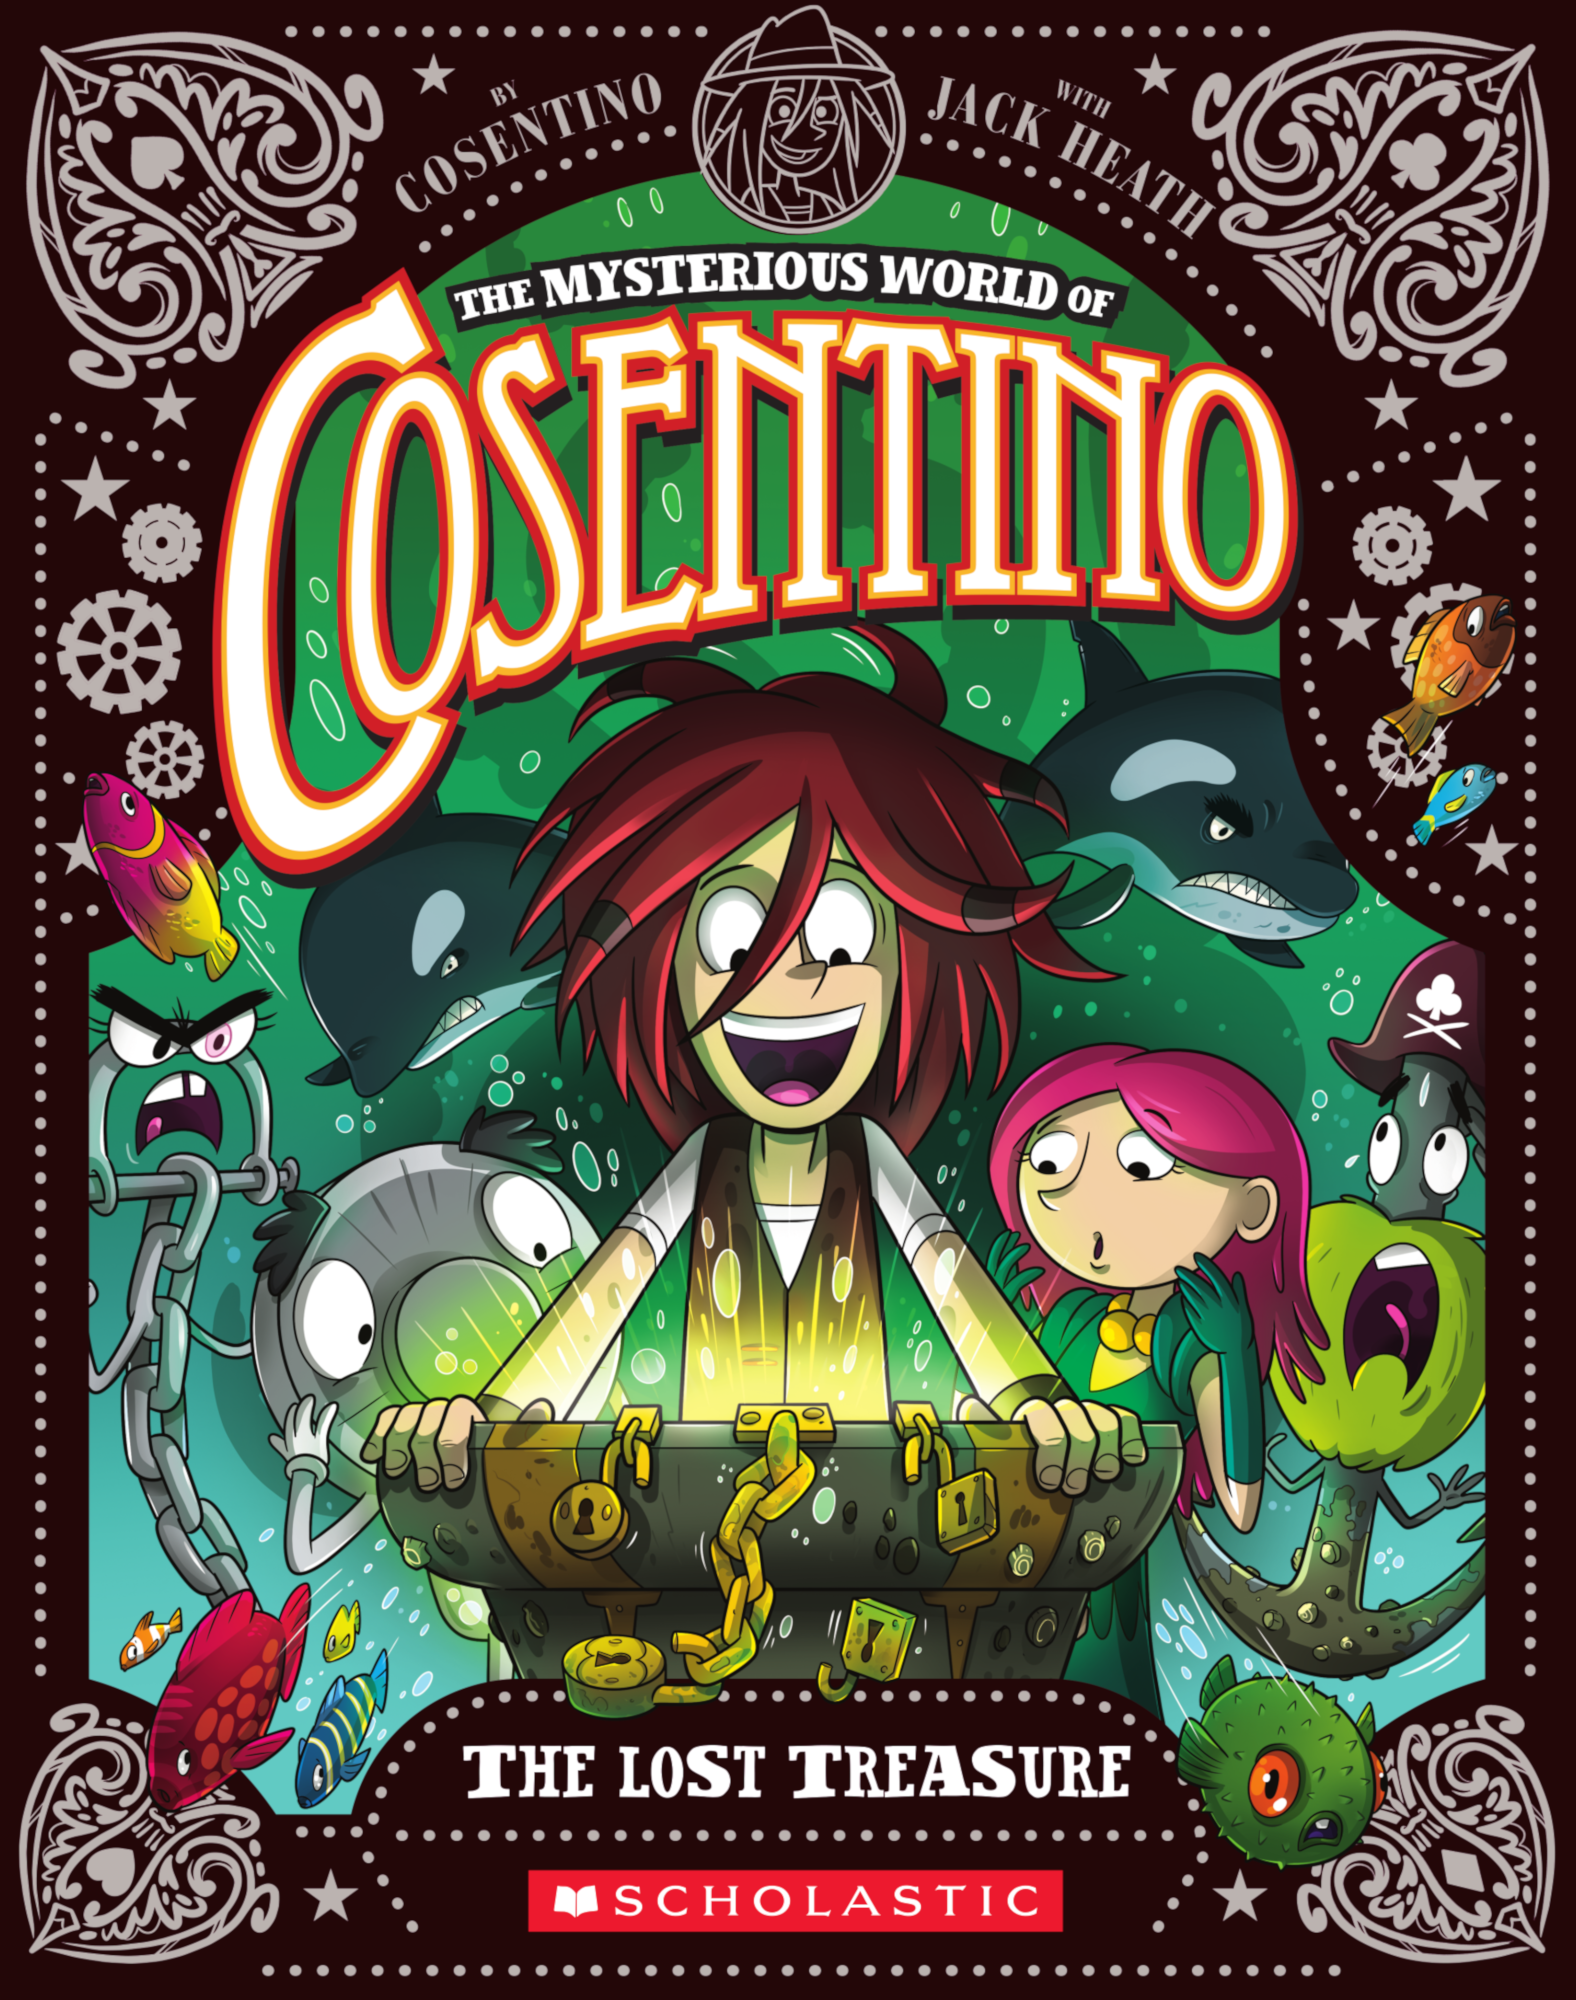 The Mysterious World of Cosentino #3: The Lost Treasure